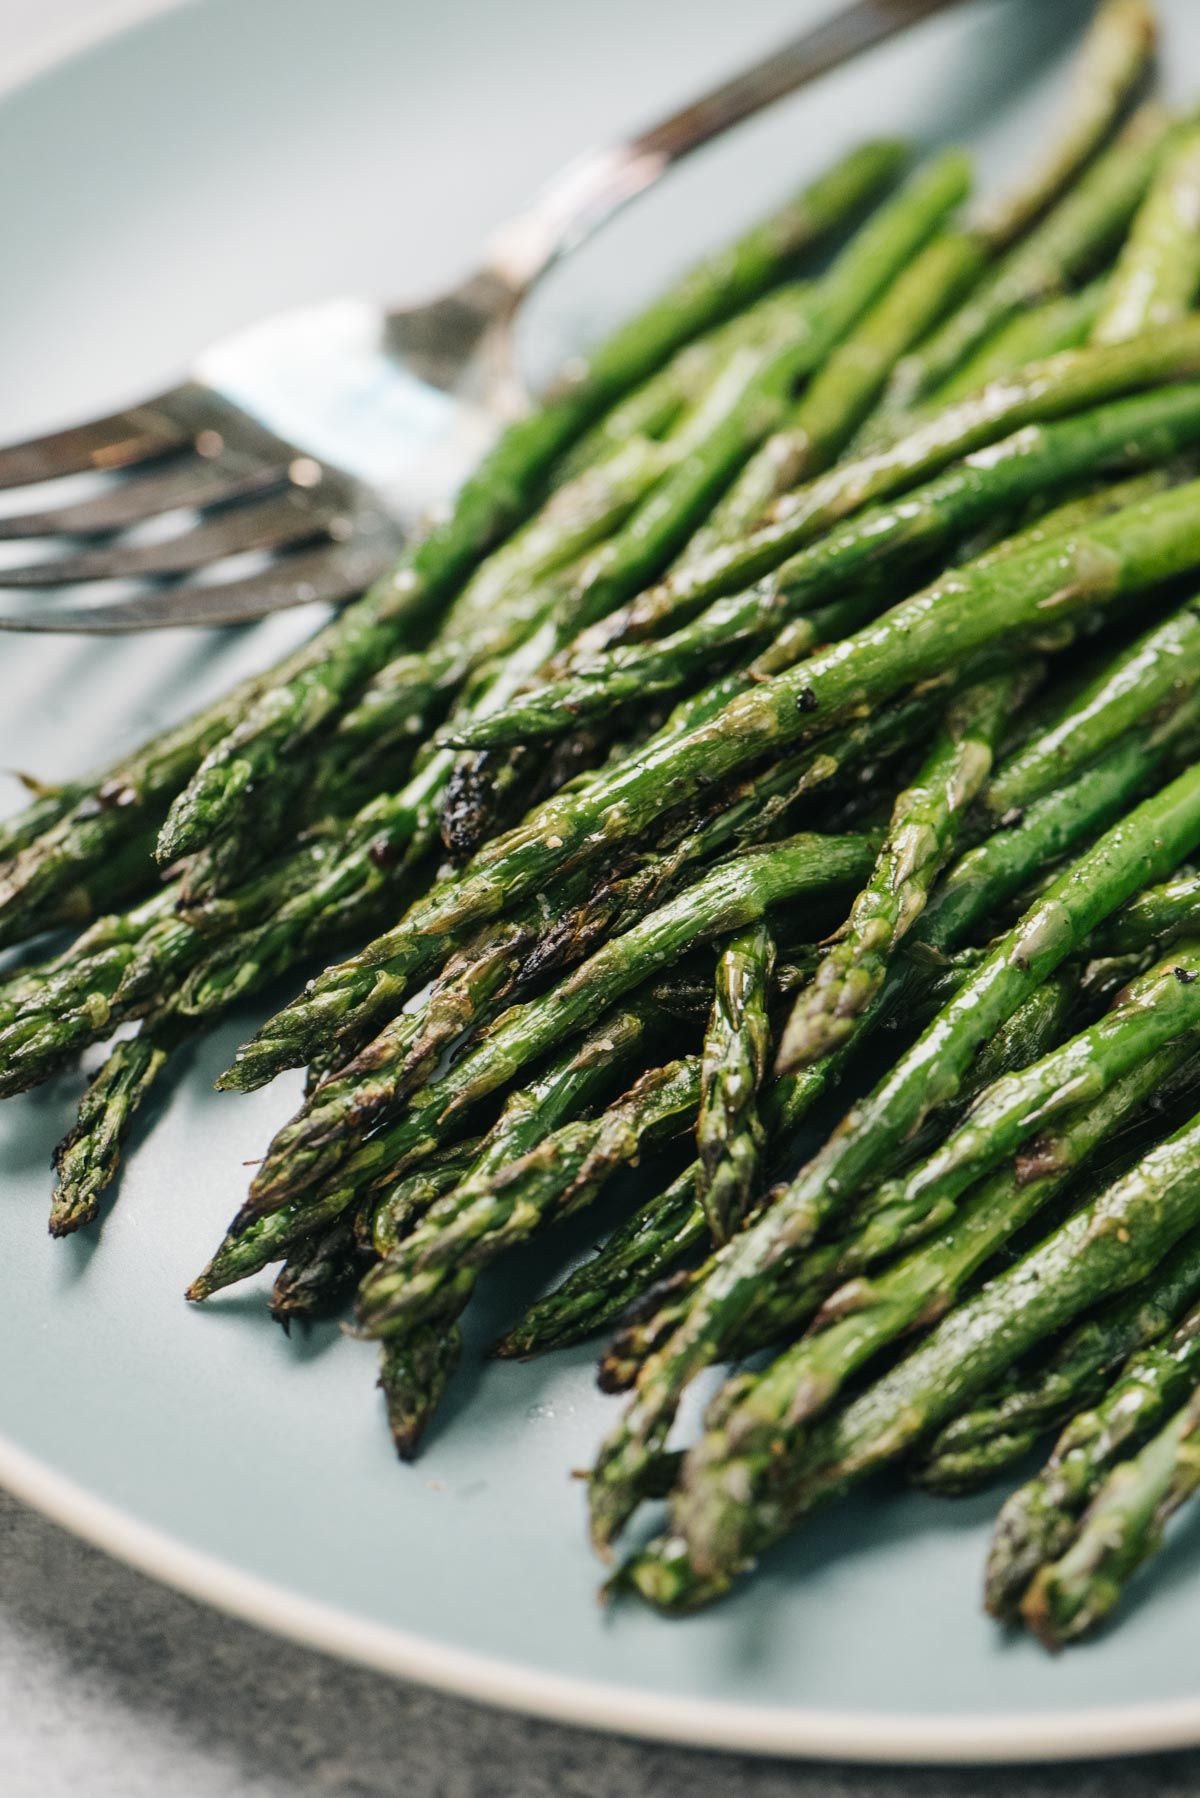 Side view, grilled asparagus spears on a blue serving plate with a silver serving fork.